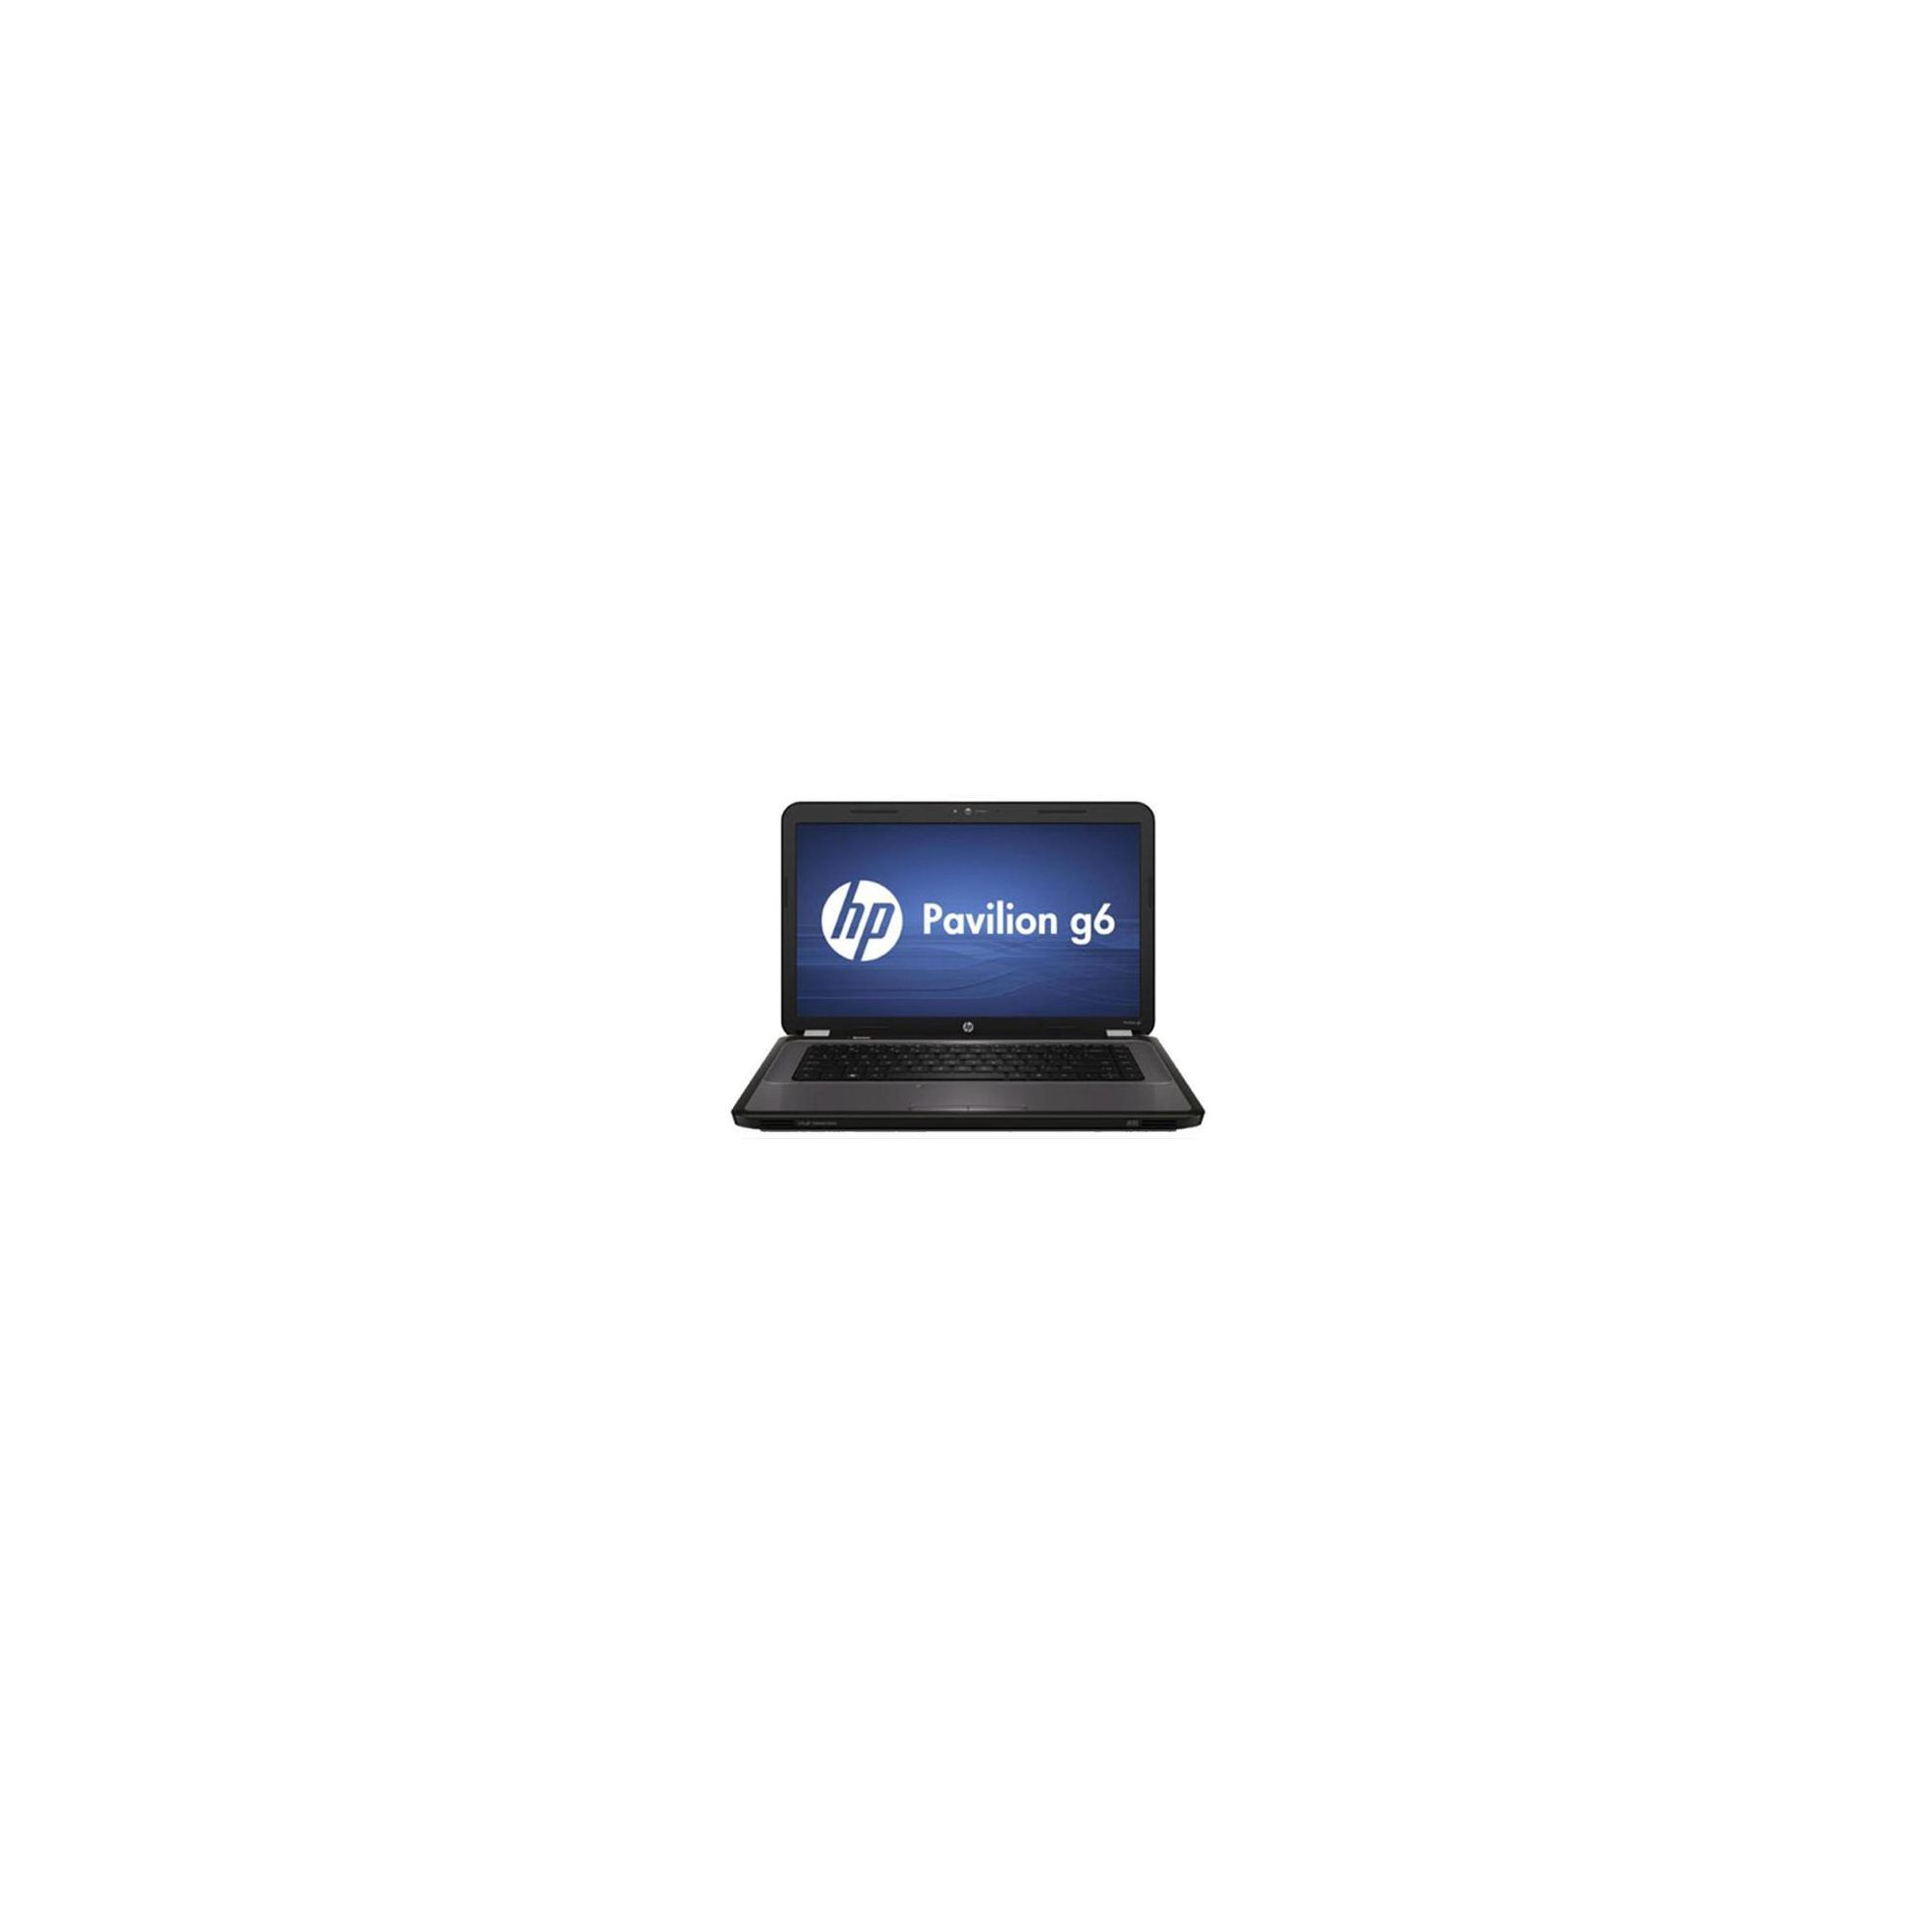 HP T5570 WES09 NANO 2GF/2GR TC at Tesco Direct